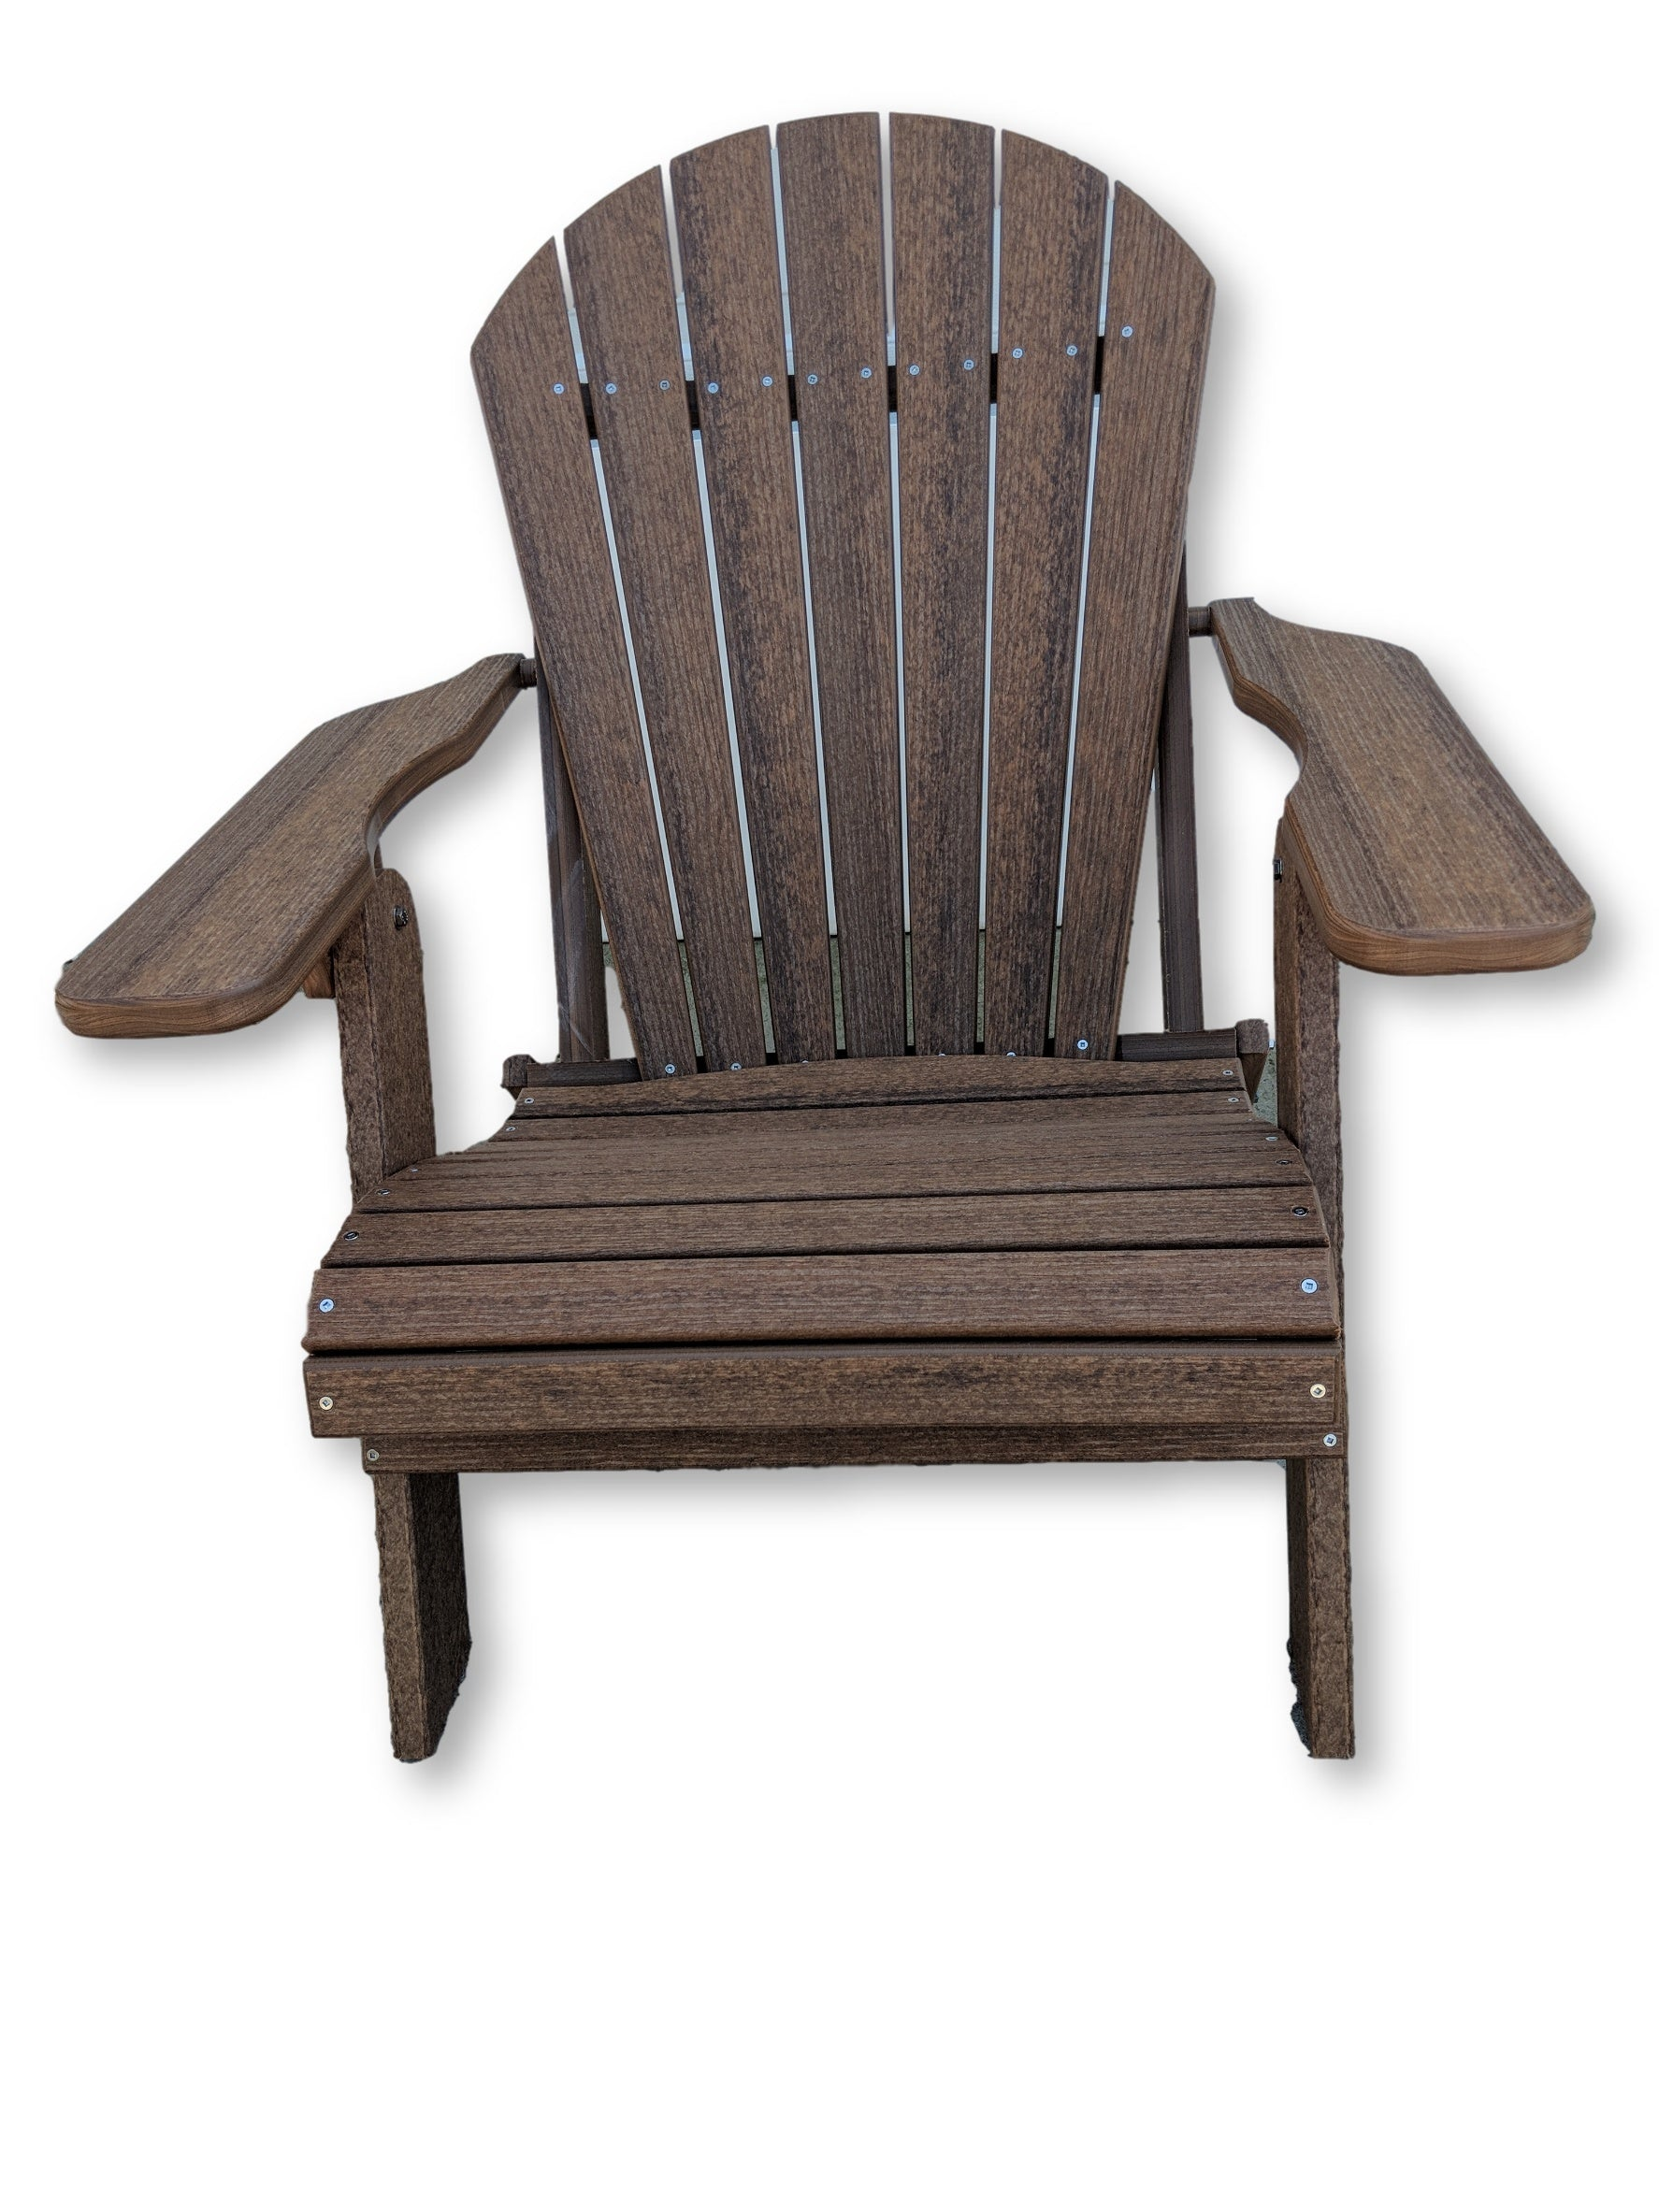 Antique Mahogany Folding Adirondack Chair(No Cup Holders)